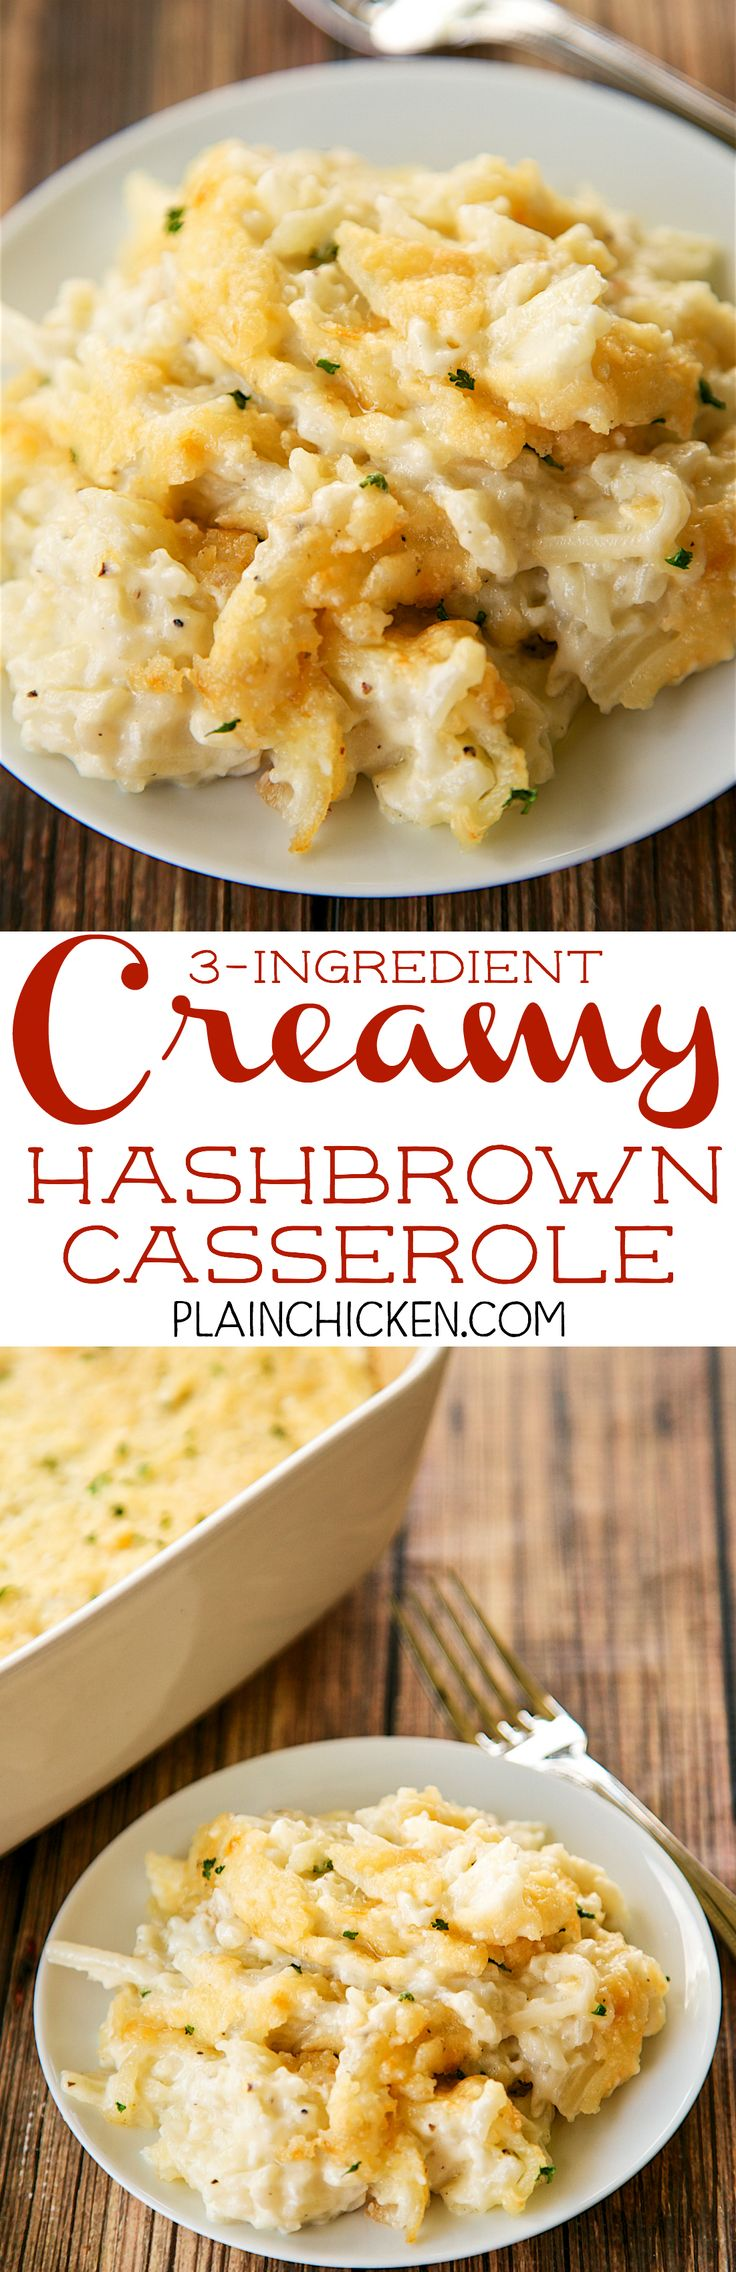 3 Ingredient Creamy Hashbrown Casserole - NO cream of anything soup!! Frozen hashbrowns, heavy cream and parmesan cheese. We like to add garlic too!! SO easy to make and they taste amazing. No prep work! A new favorite in our house. Also great for a dinner party.